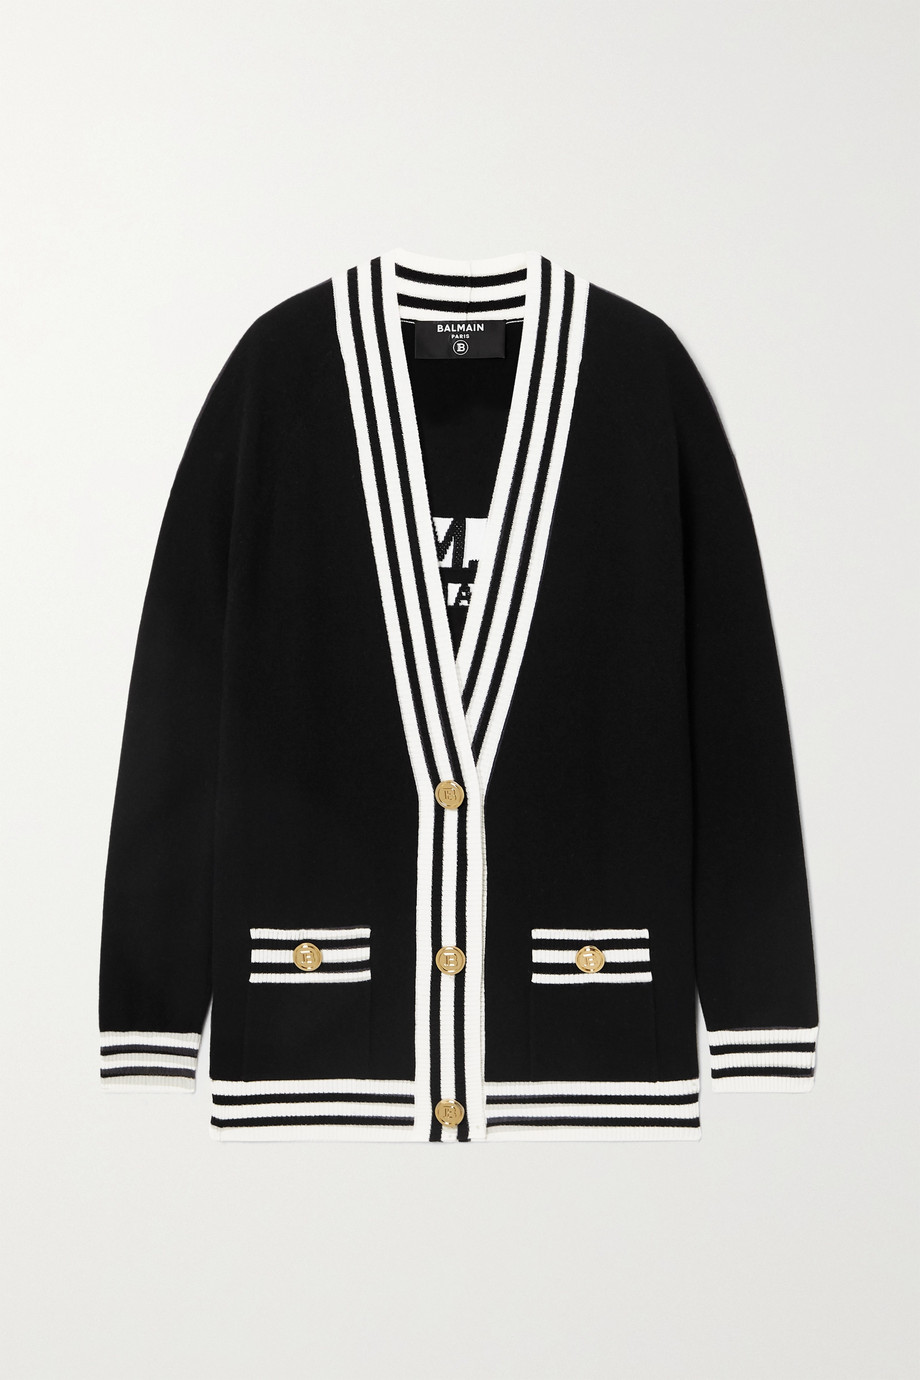 Balmain Two-tone intarsia wool-blend cardigan